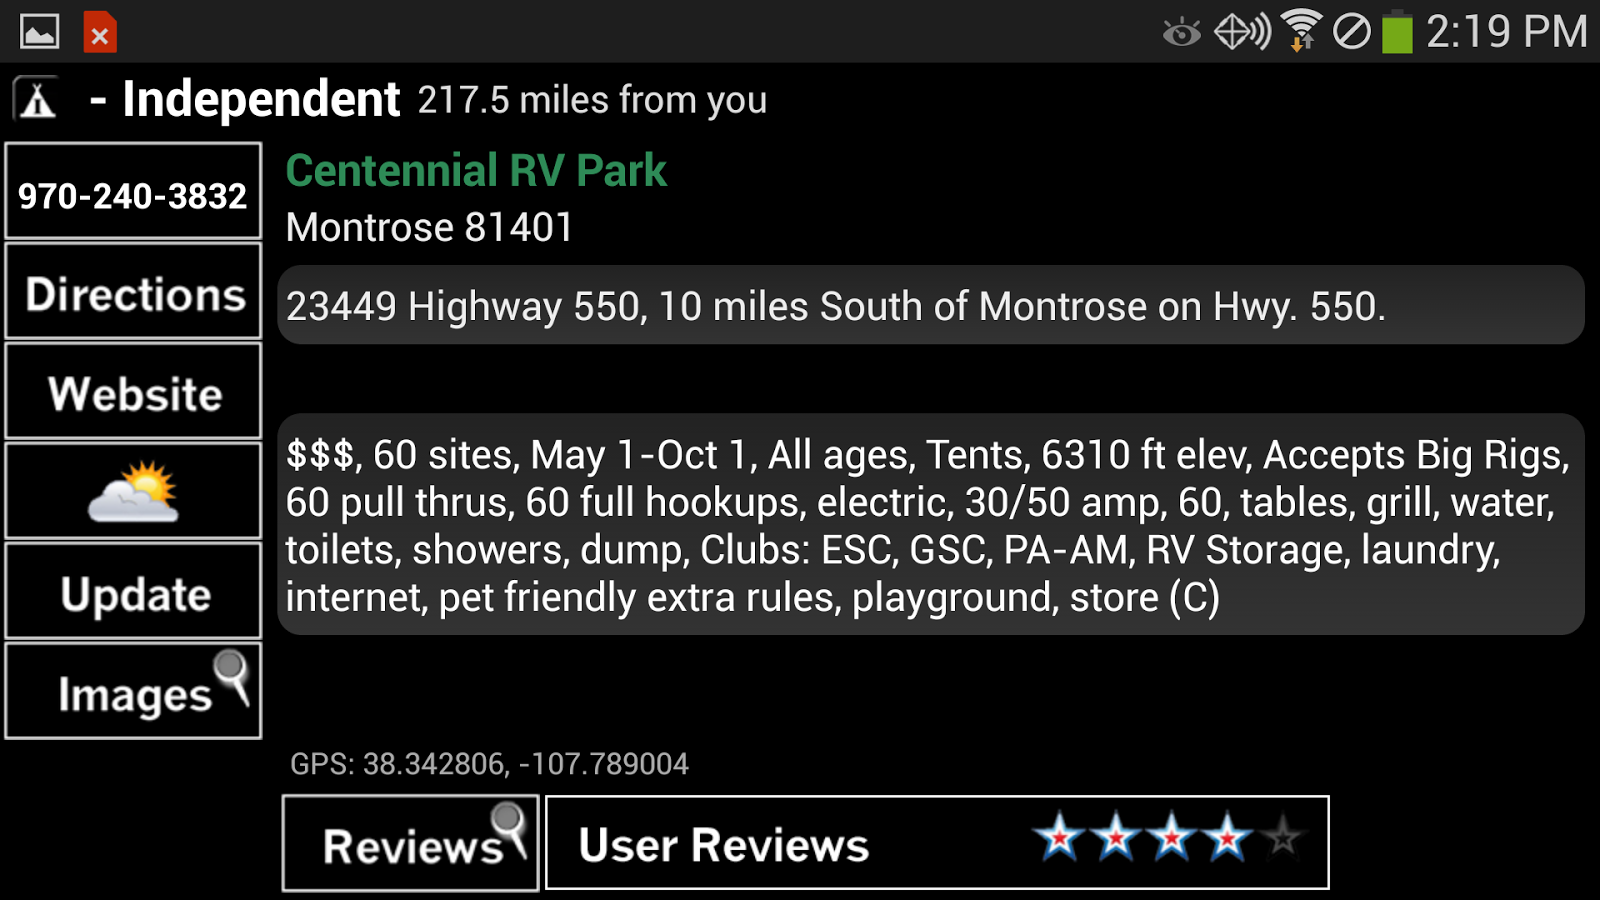 Camp and RV - Campgrounds Plus - screenshot